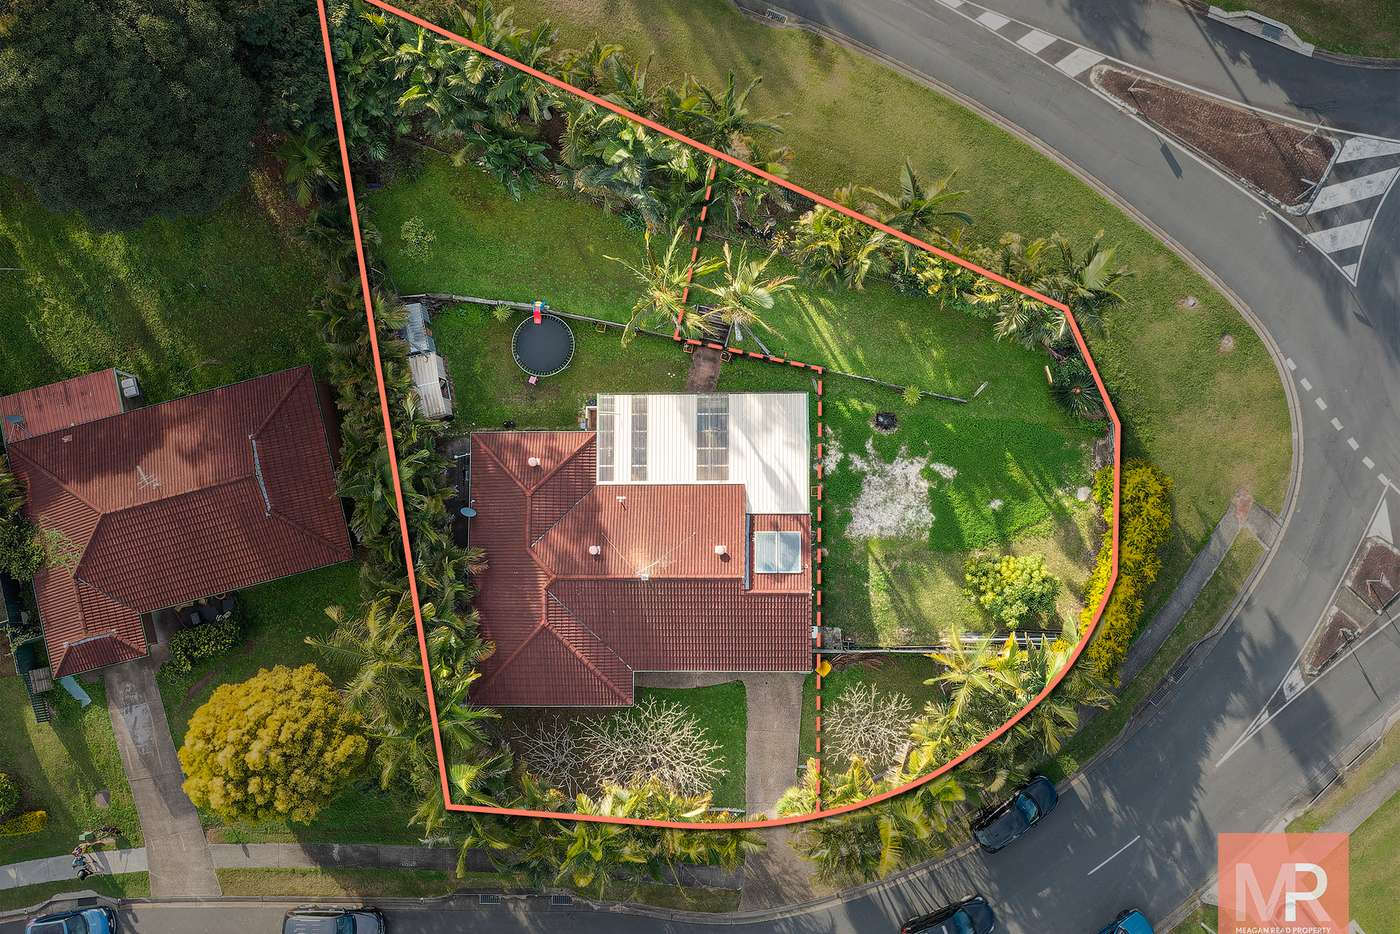 Main view of Homely house listing, 66 Avonmore Street, Edens Landing QLD 4207